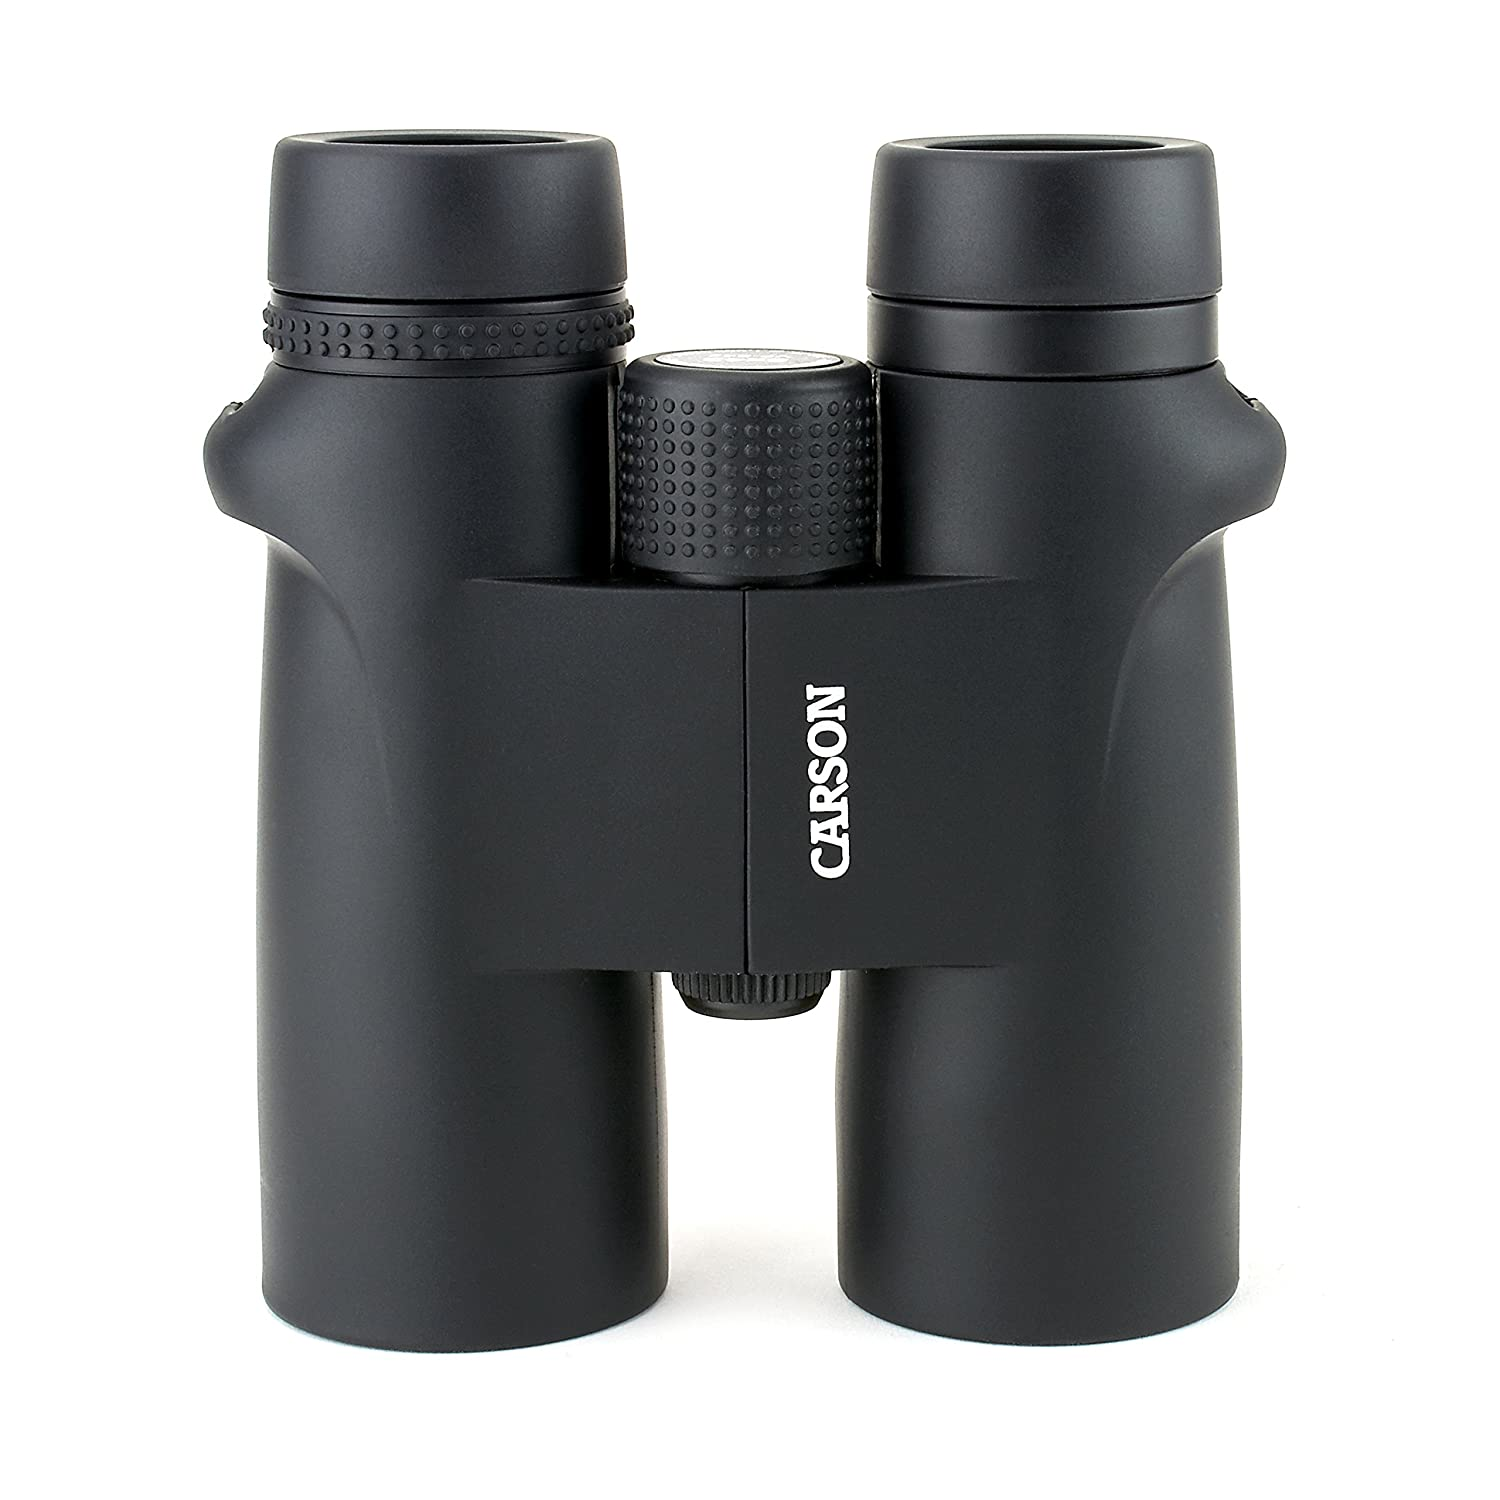 Carson VP Series Binoculars Black Friday Deal 2020